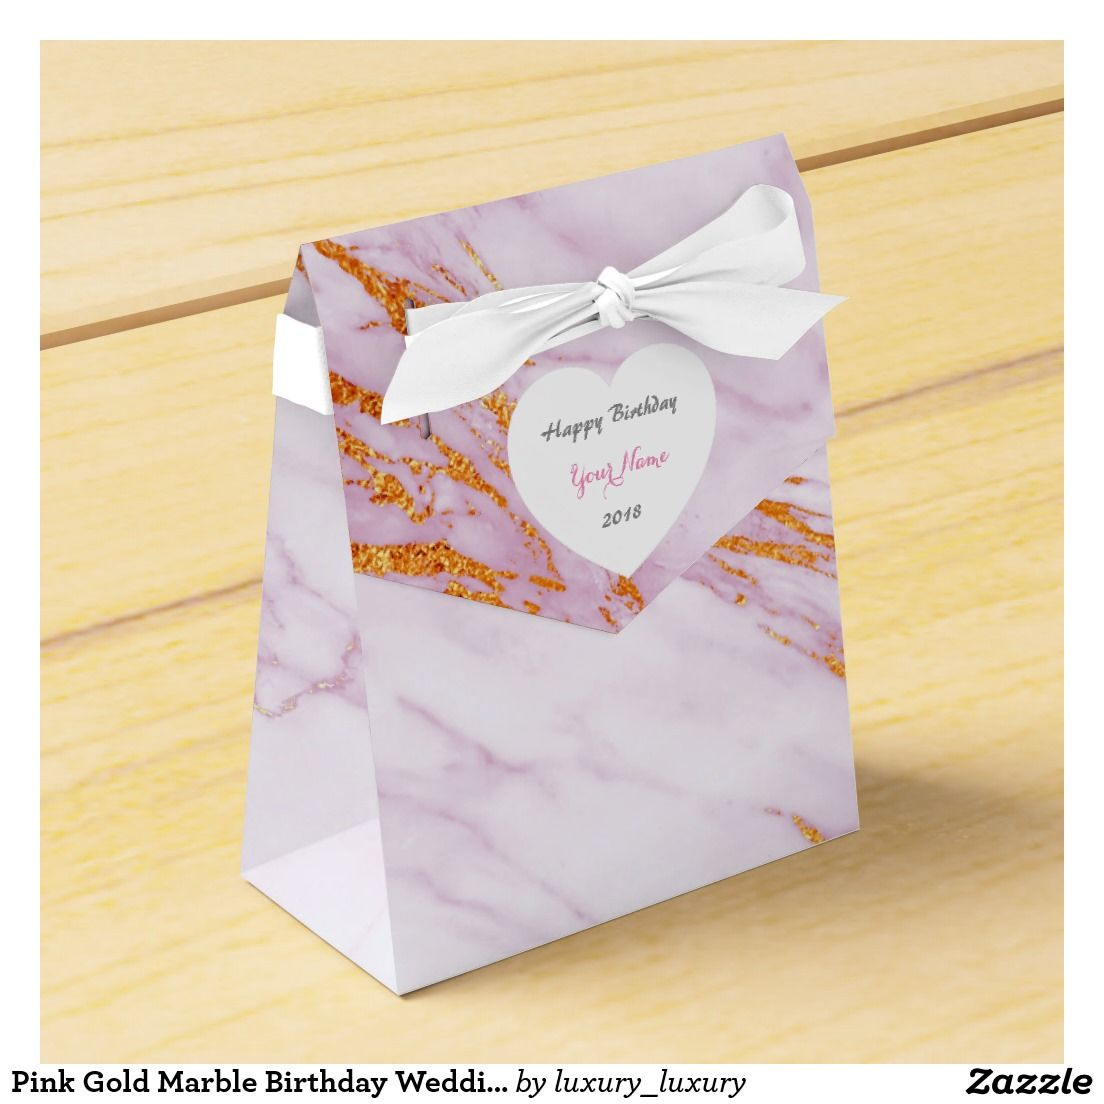 Pink Gold Marble Birthday Wedding Favor Favour Boxes | Pinterest ...